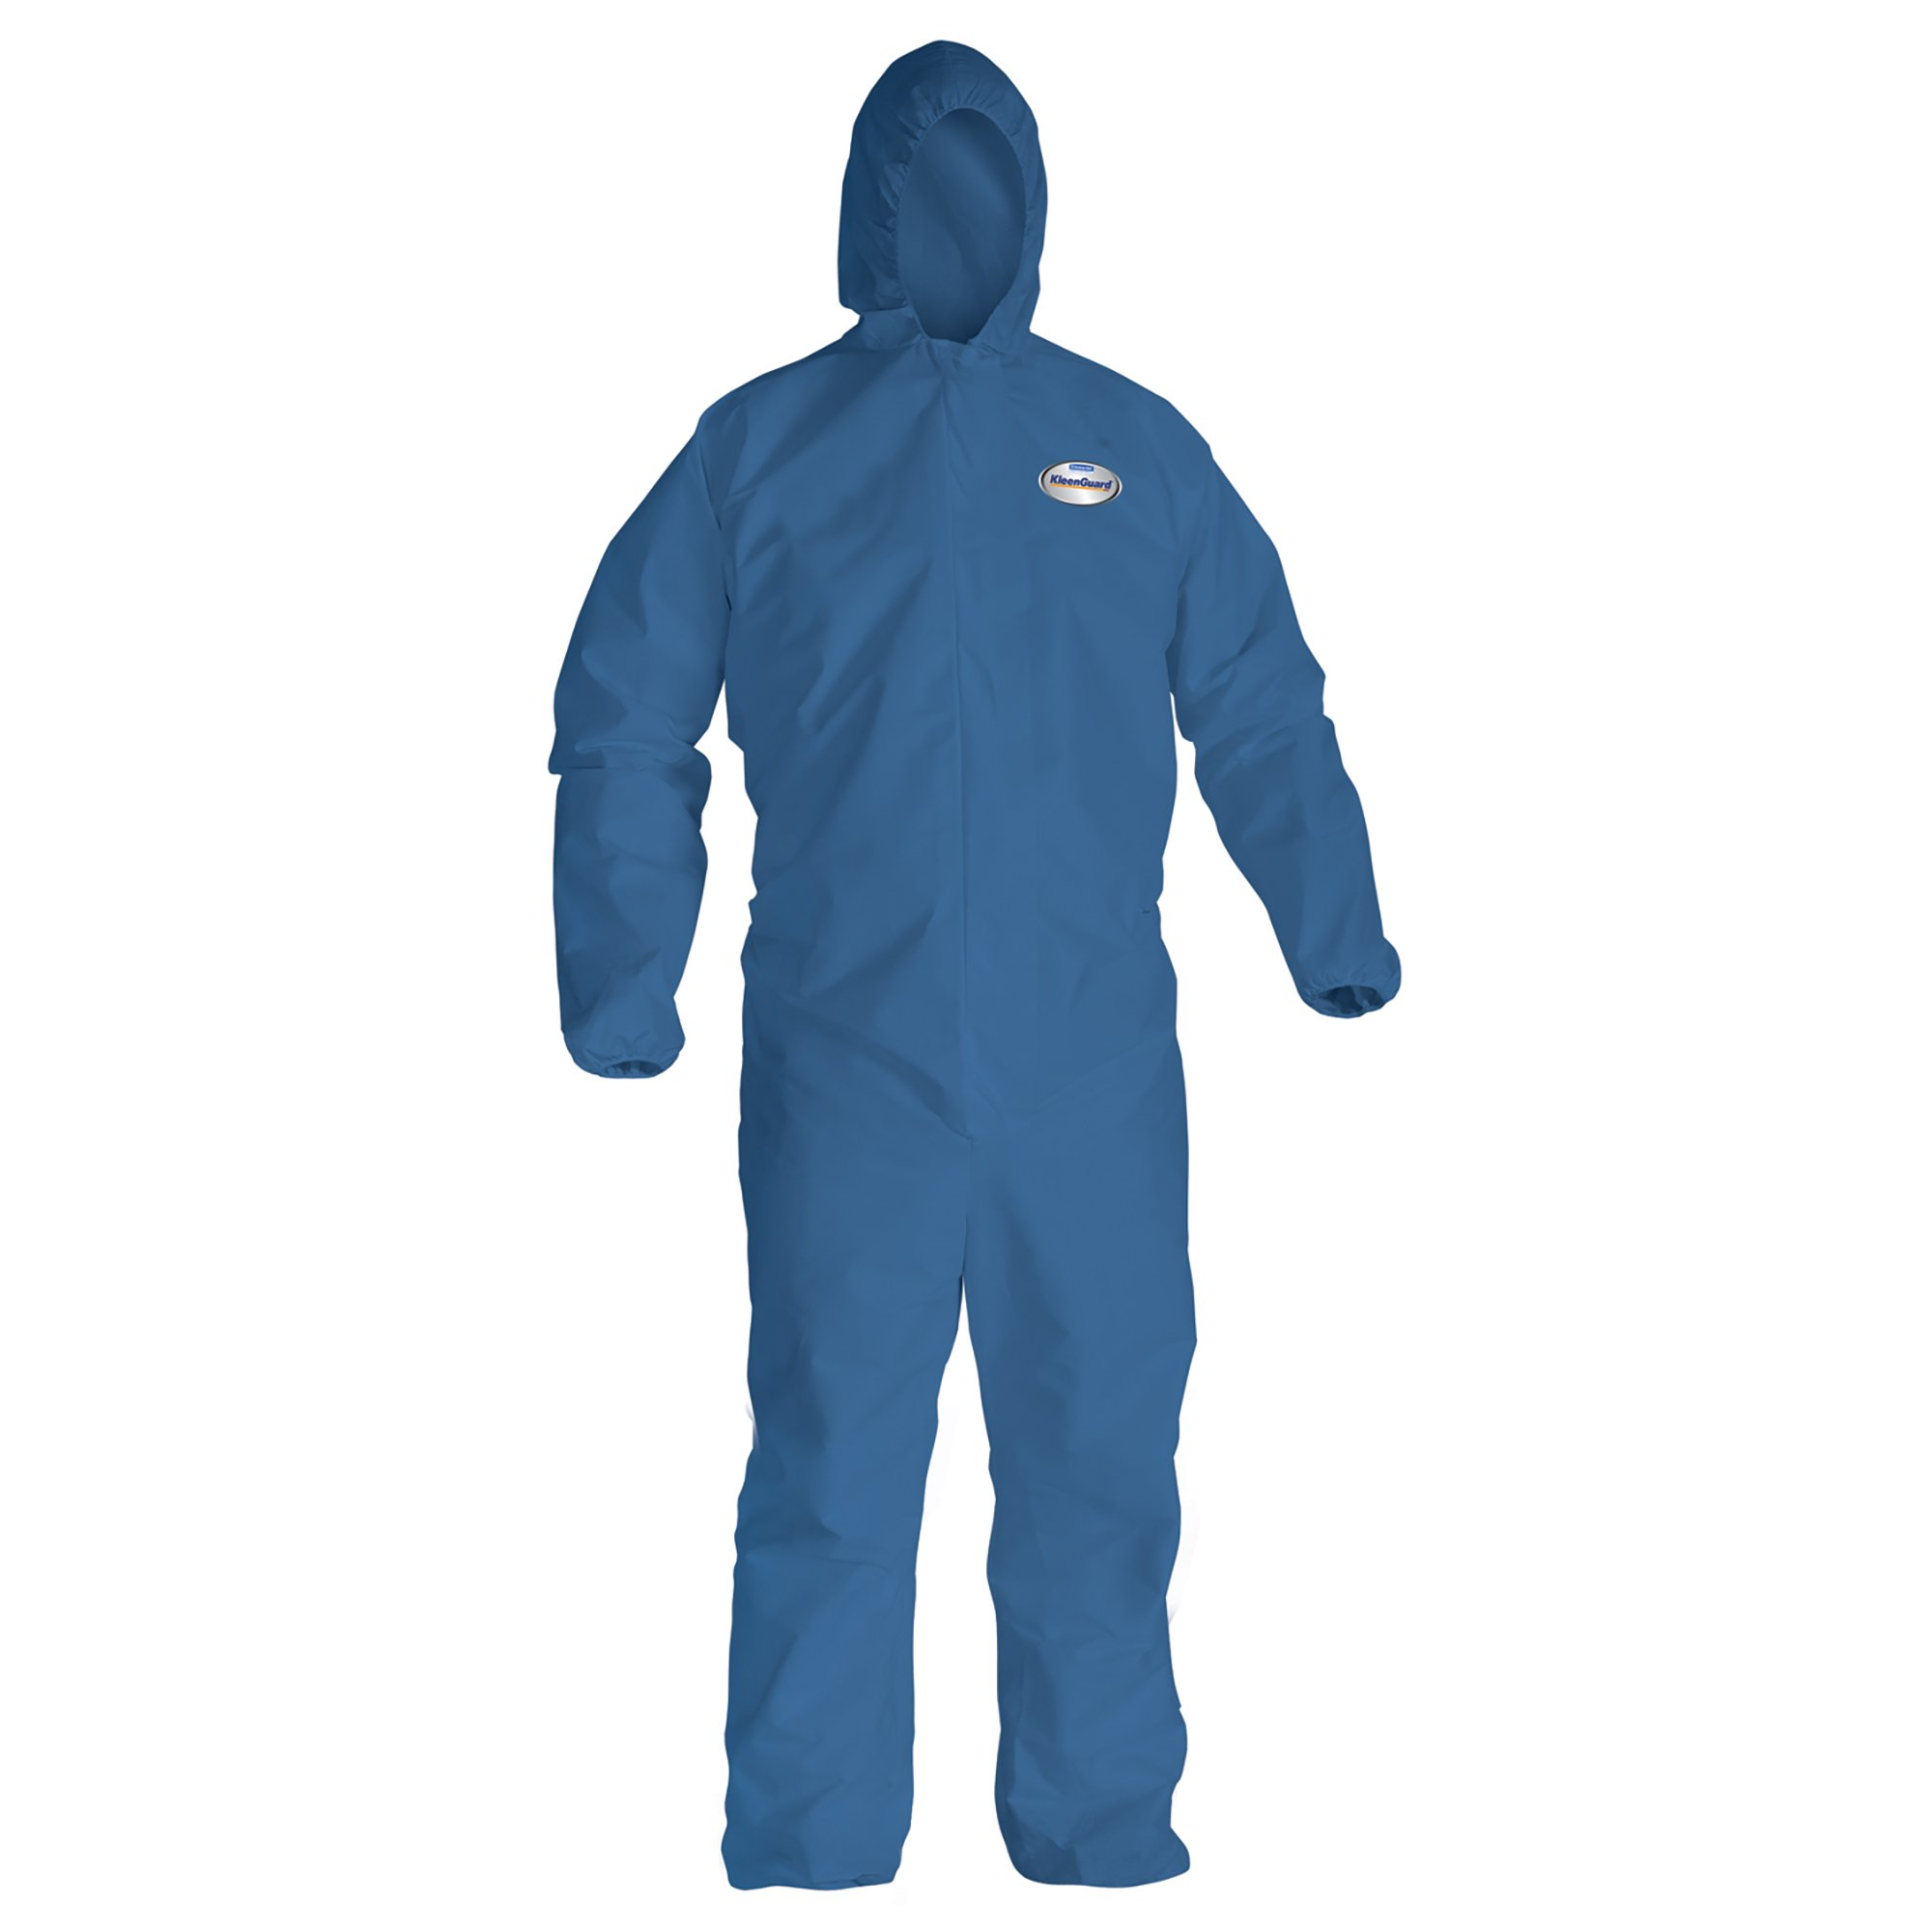 Kleenguard A20 Breathable Particle Protection Hooded Coveralls (58522), REFLEX Design, Zip Front, Hood, Boots, Blue, Medium, 24 / Case